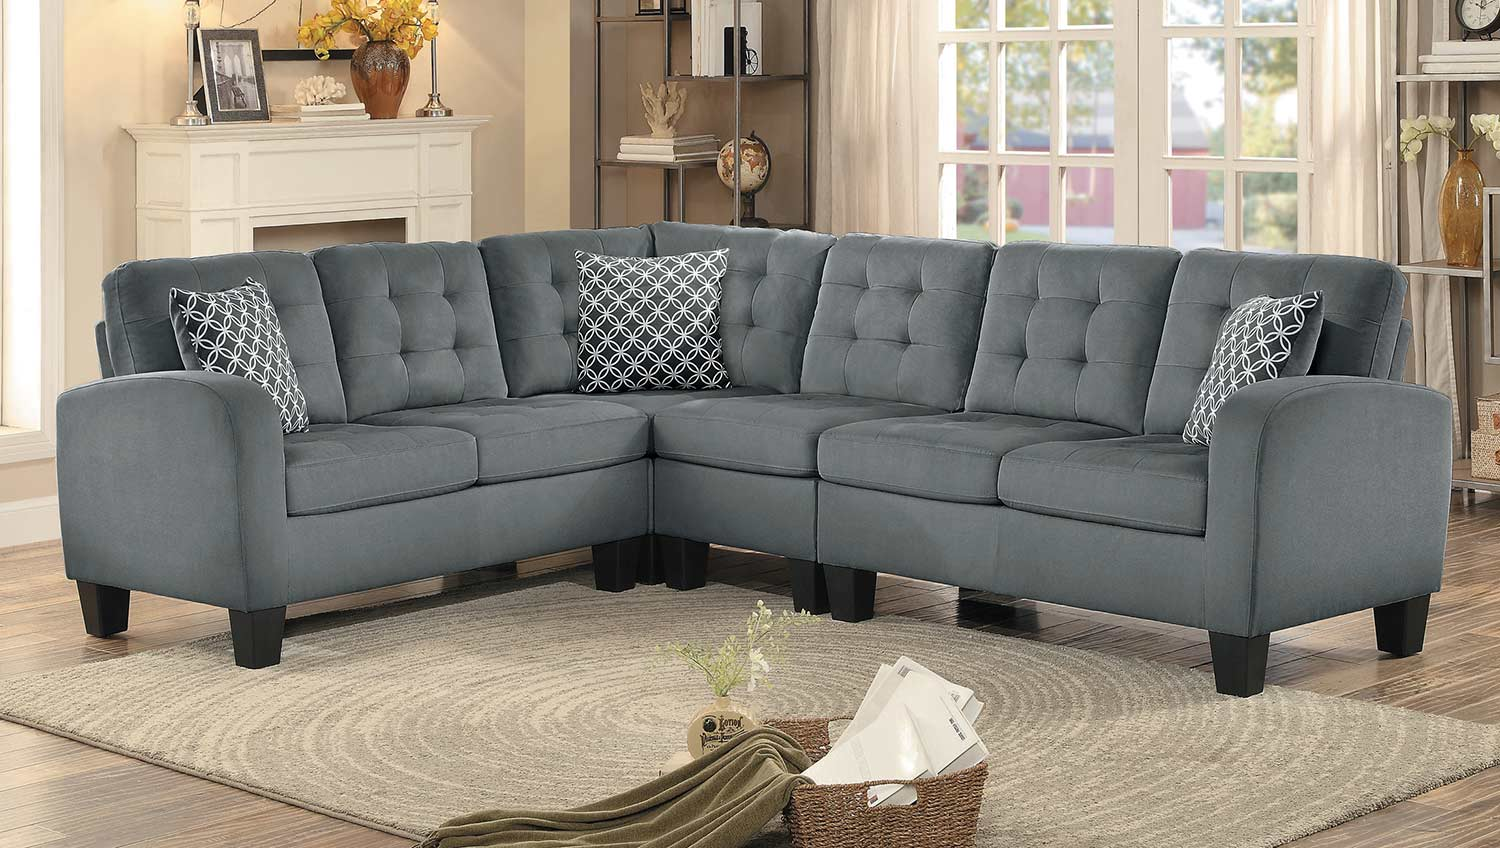 Homelegance Sinclair Reversible Sectional Sofa   Gray Fabric